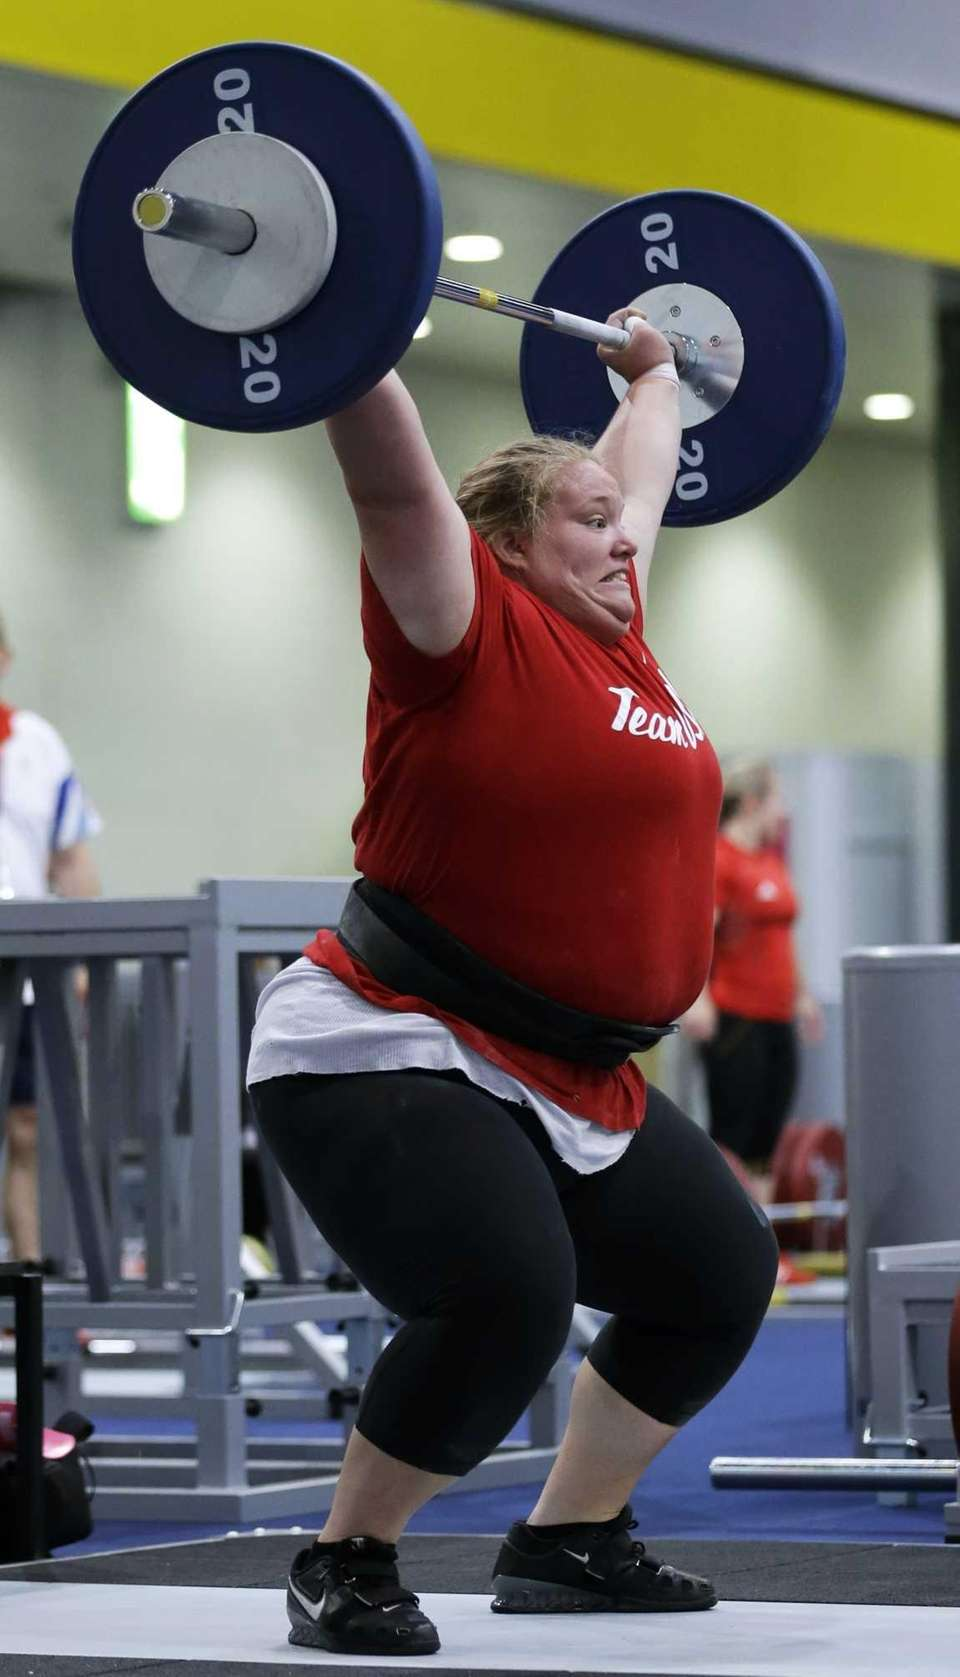 Weight-lifter Holley Mangold, of the United States, trains